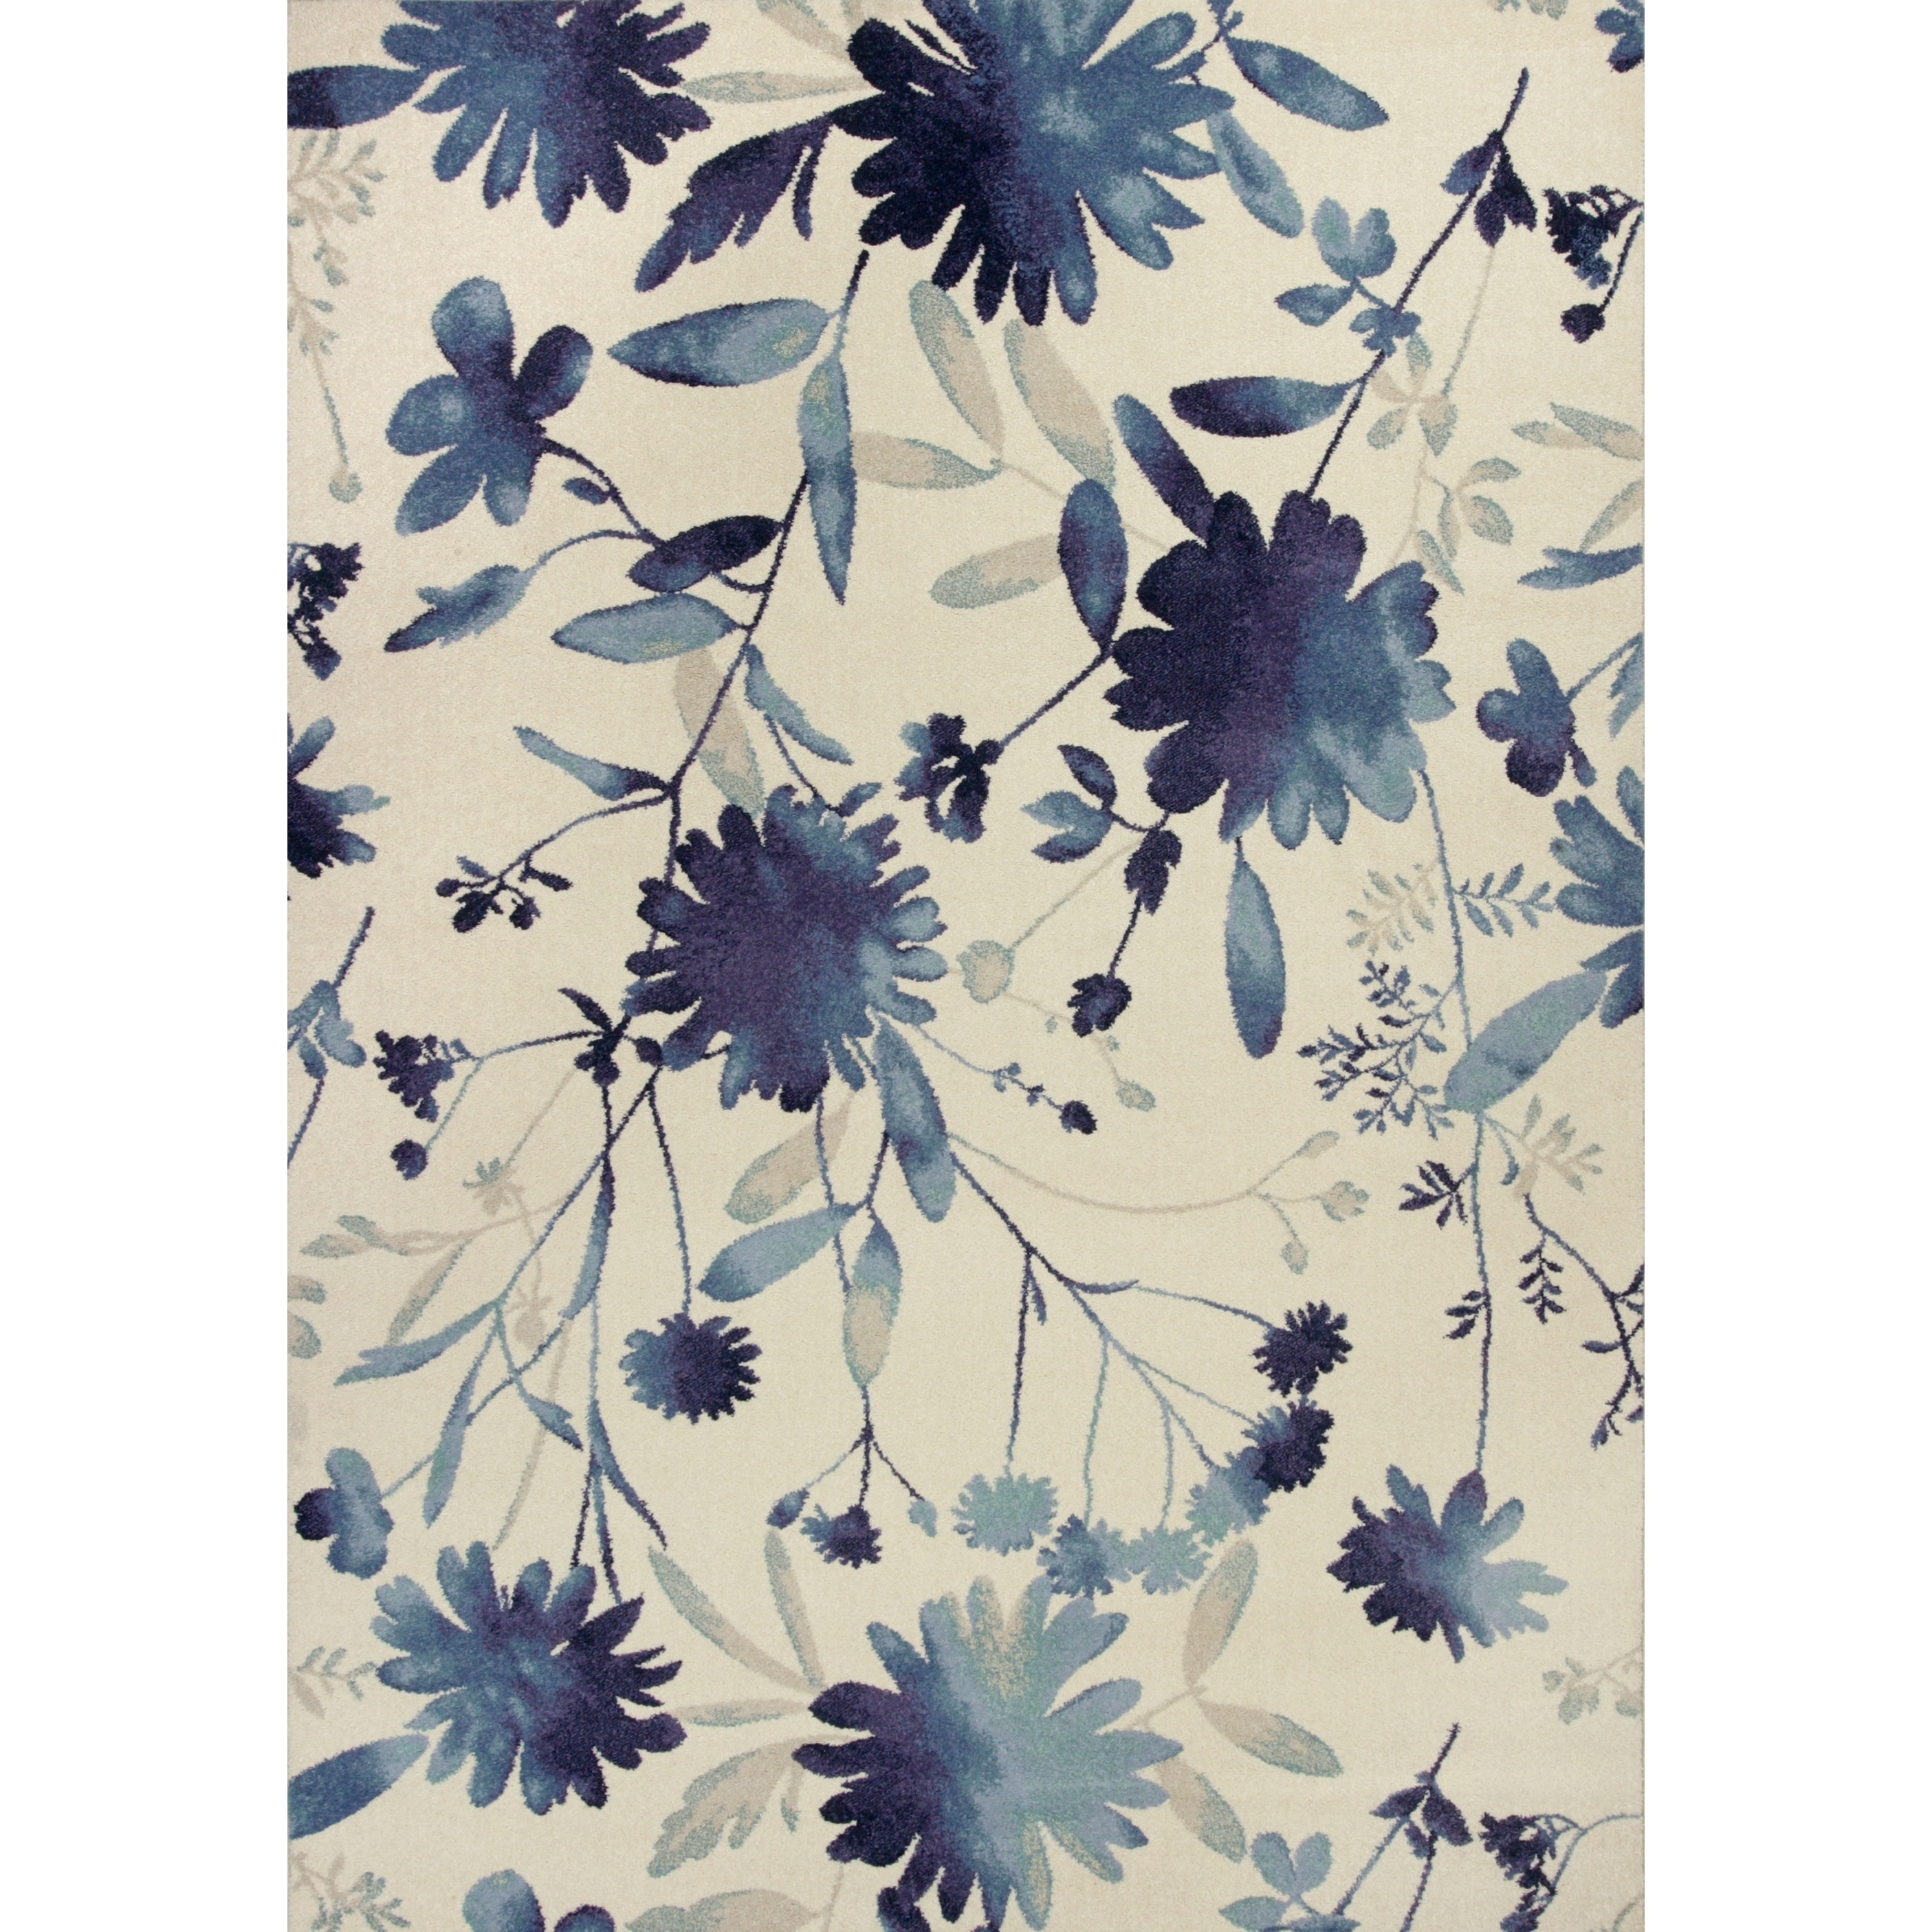 Domani Madison Blue Floral Watercolors Area Rug Blue 6 7 X 9 6